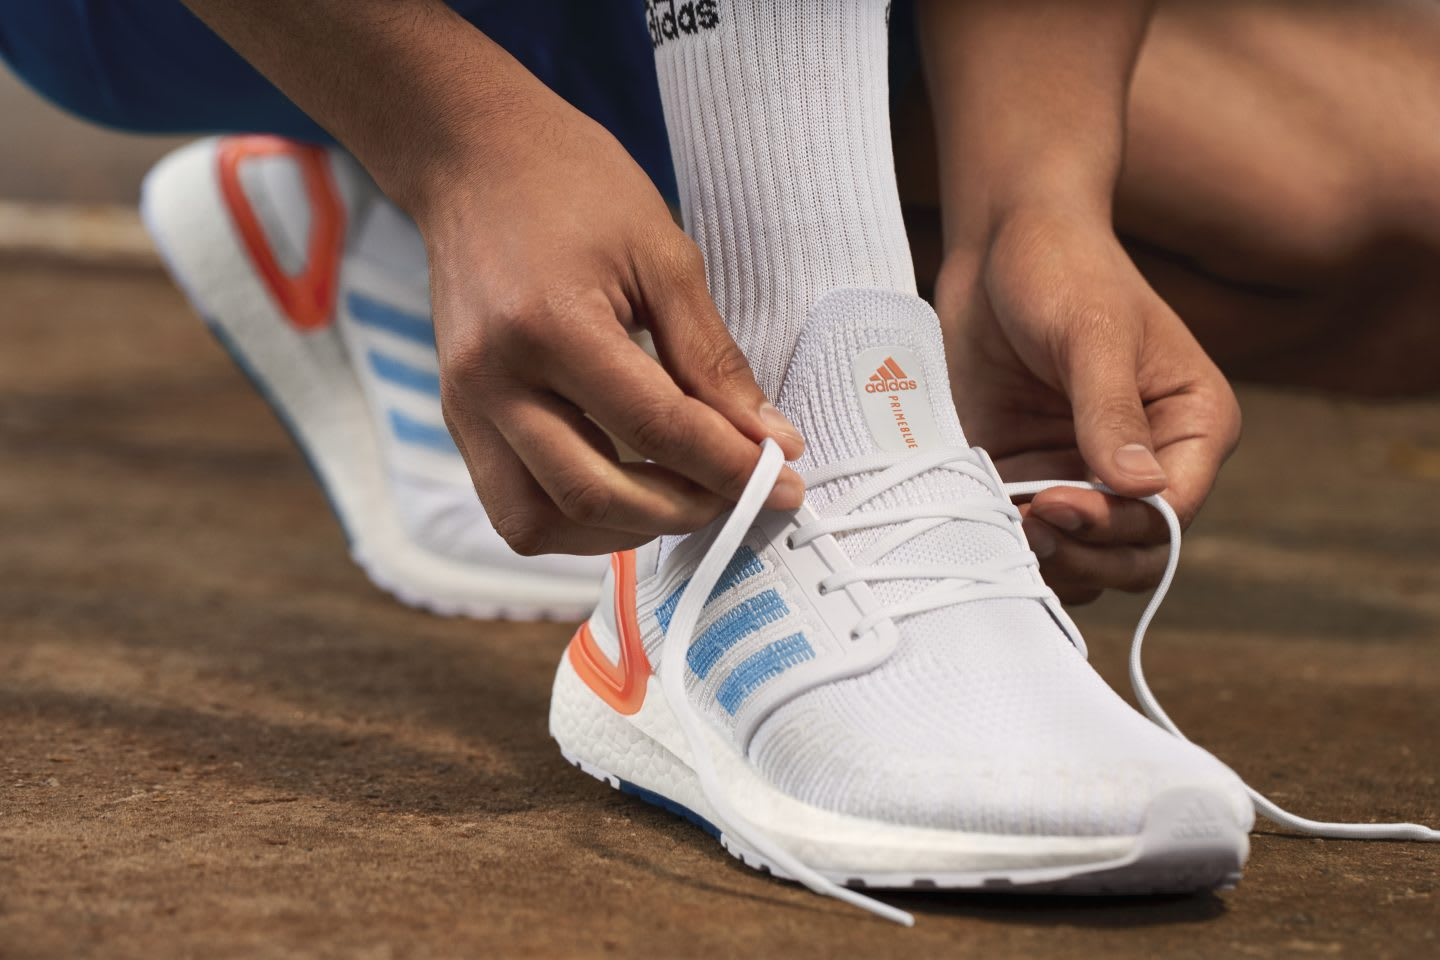 A person lacing up white adidas running shoes. plastic waste, adidas, Primeblue, sustainability, GamePlan A